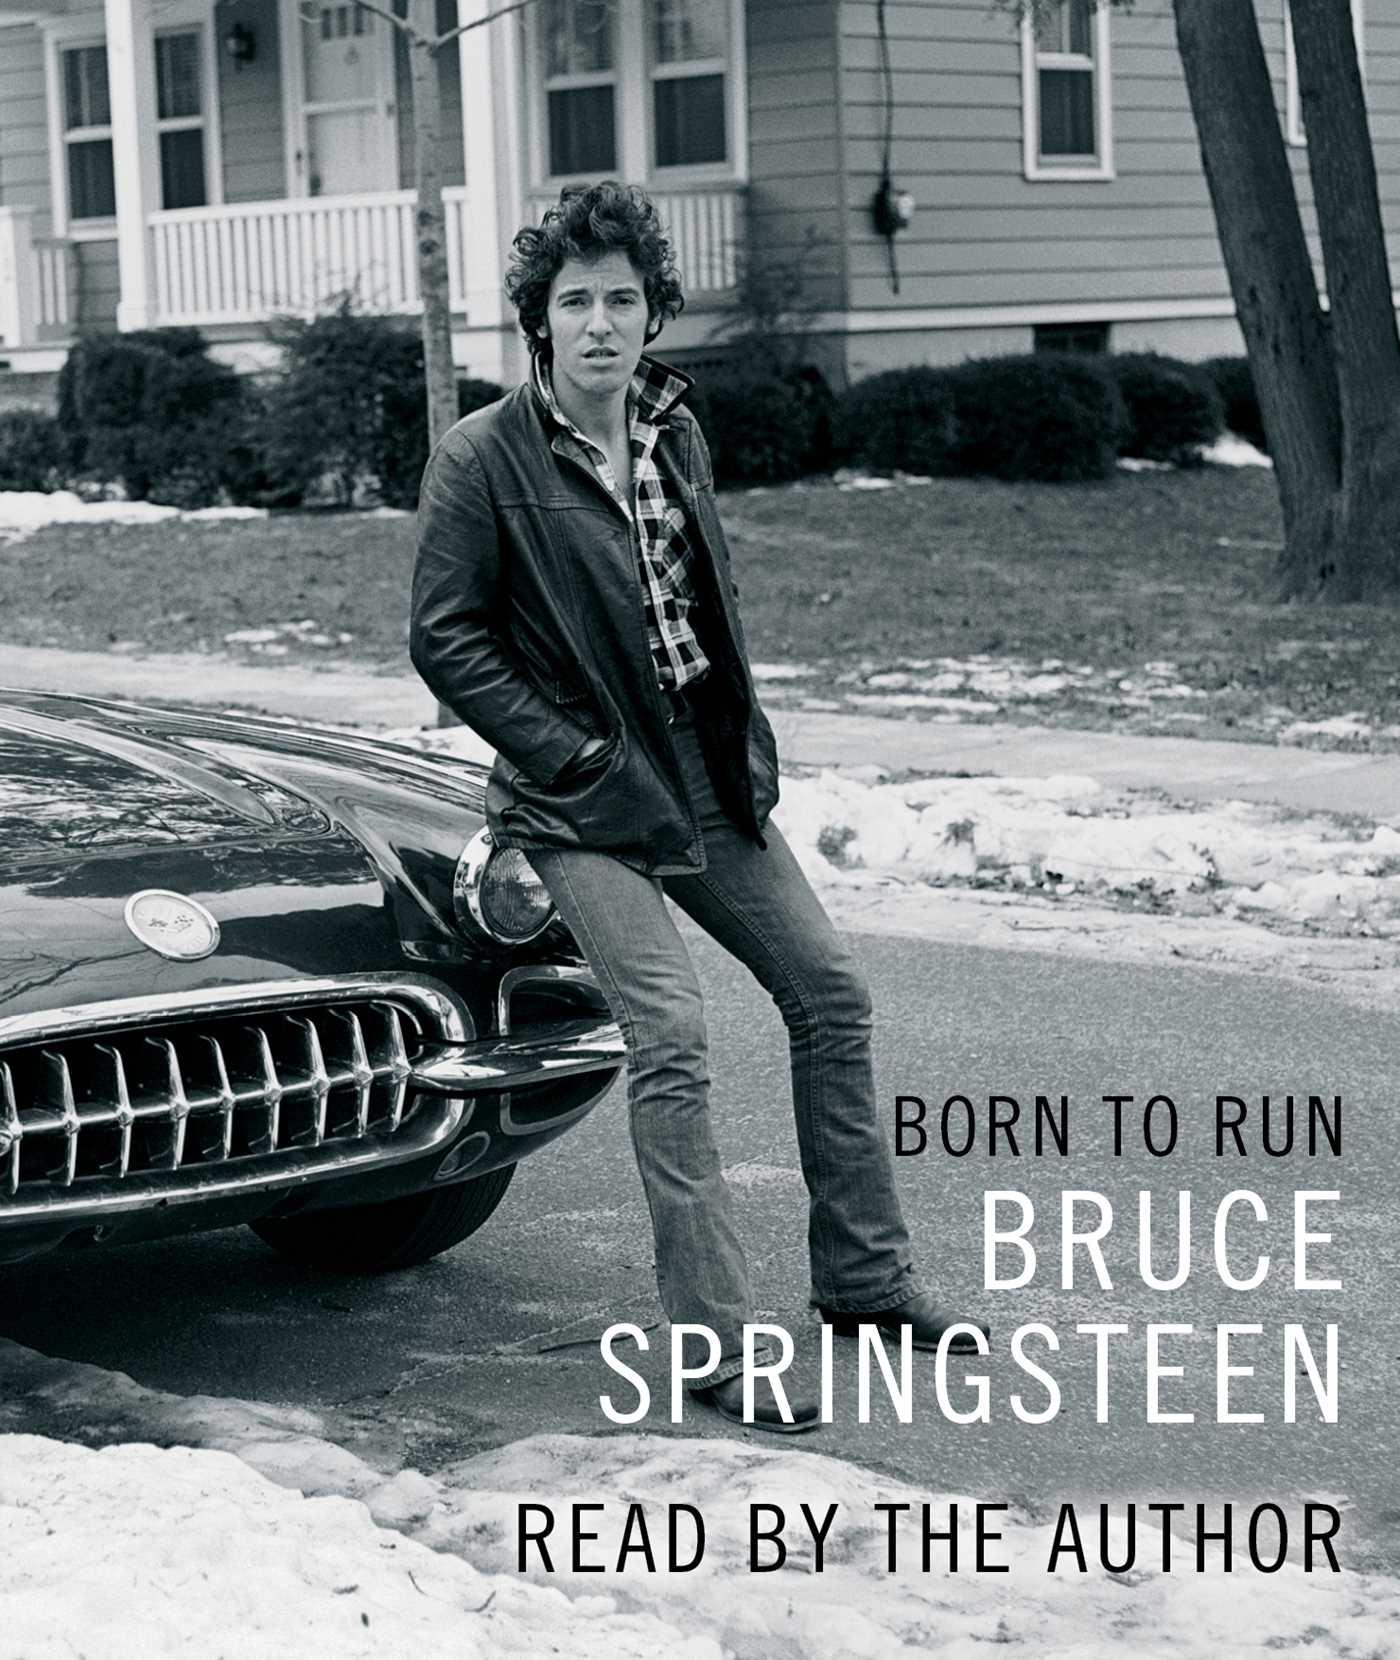 Born to run 9781508224228 hr